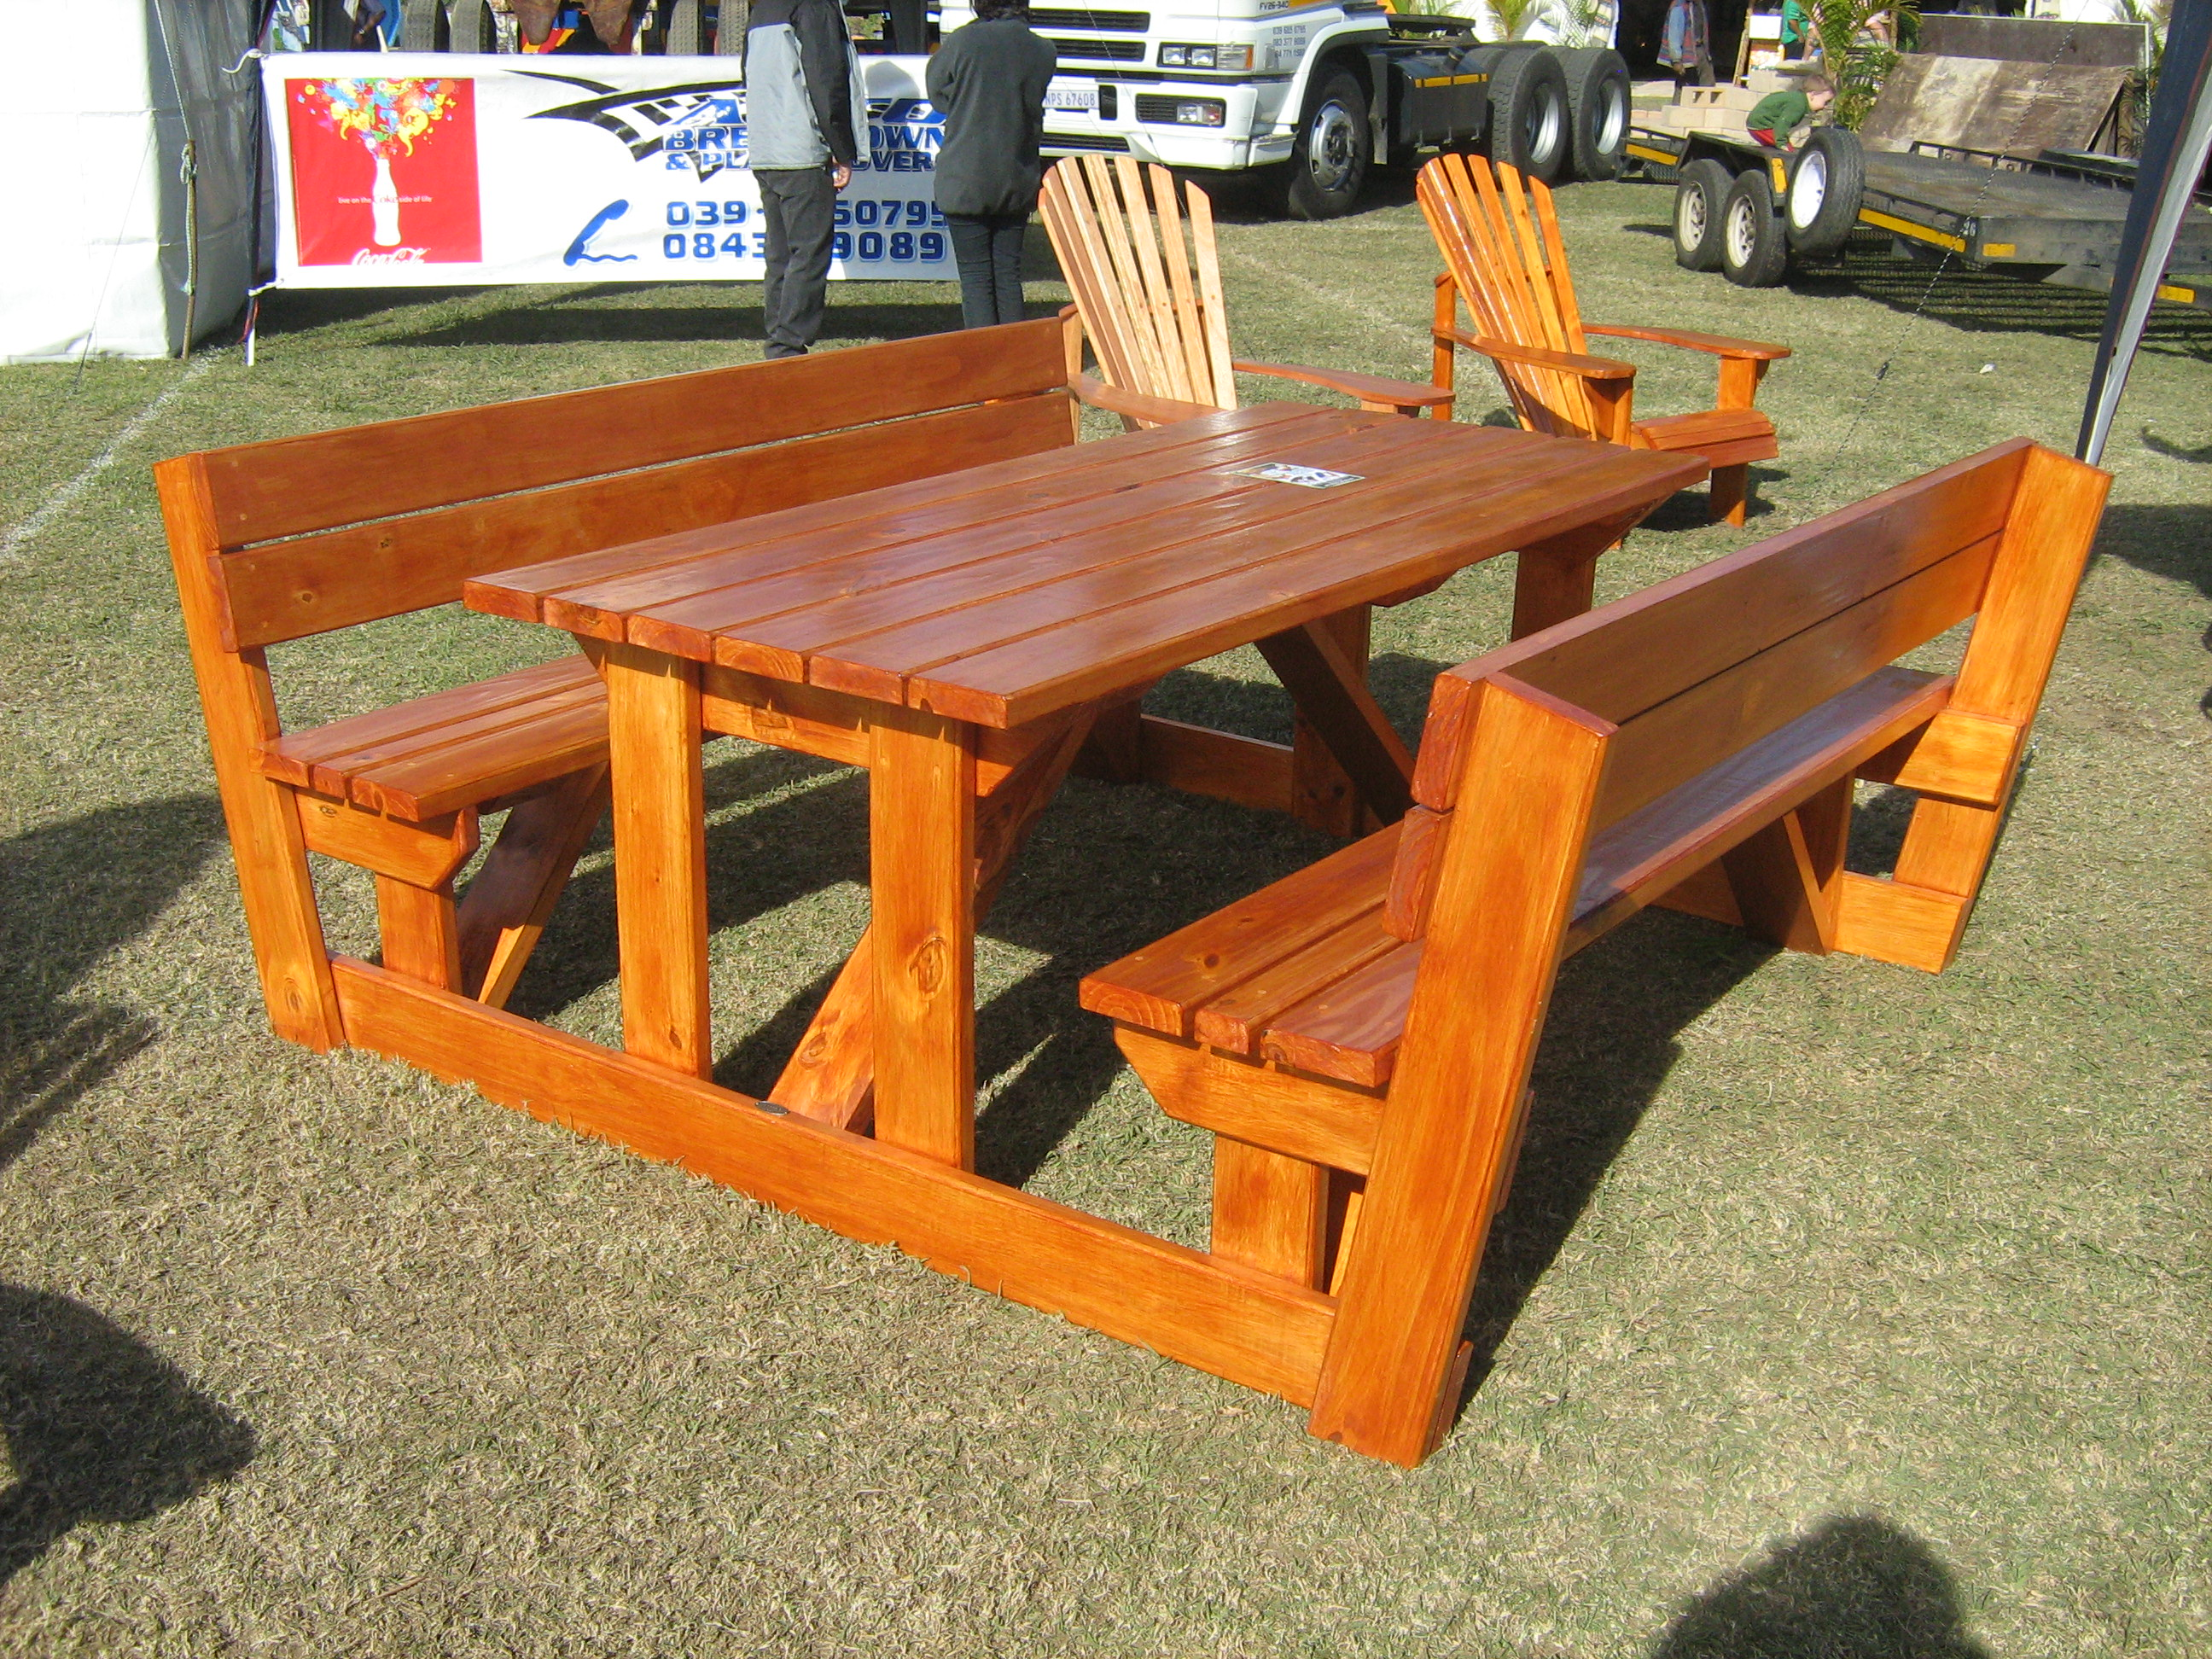 Outdoor garden furniture picnic tables the wood joint for Garden table designs wood